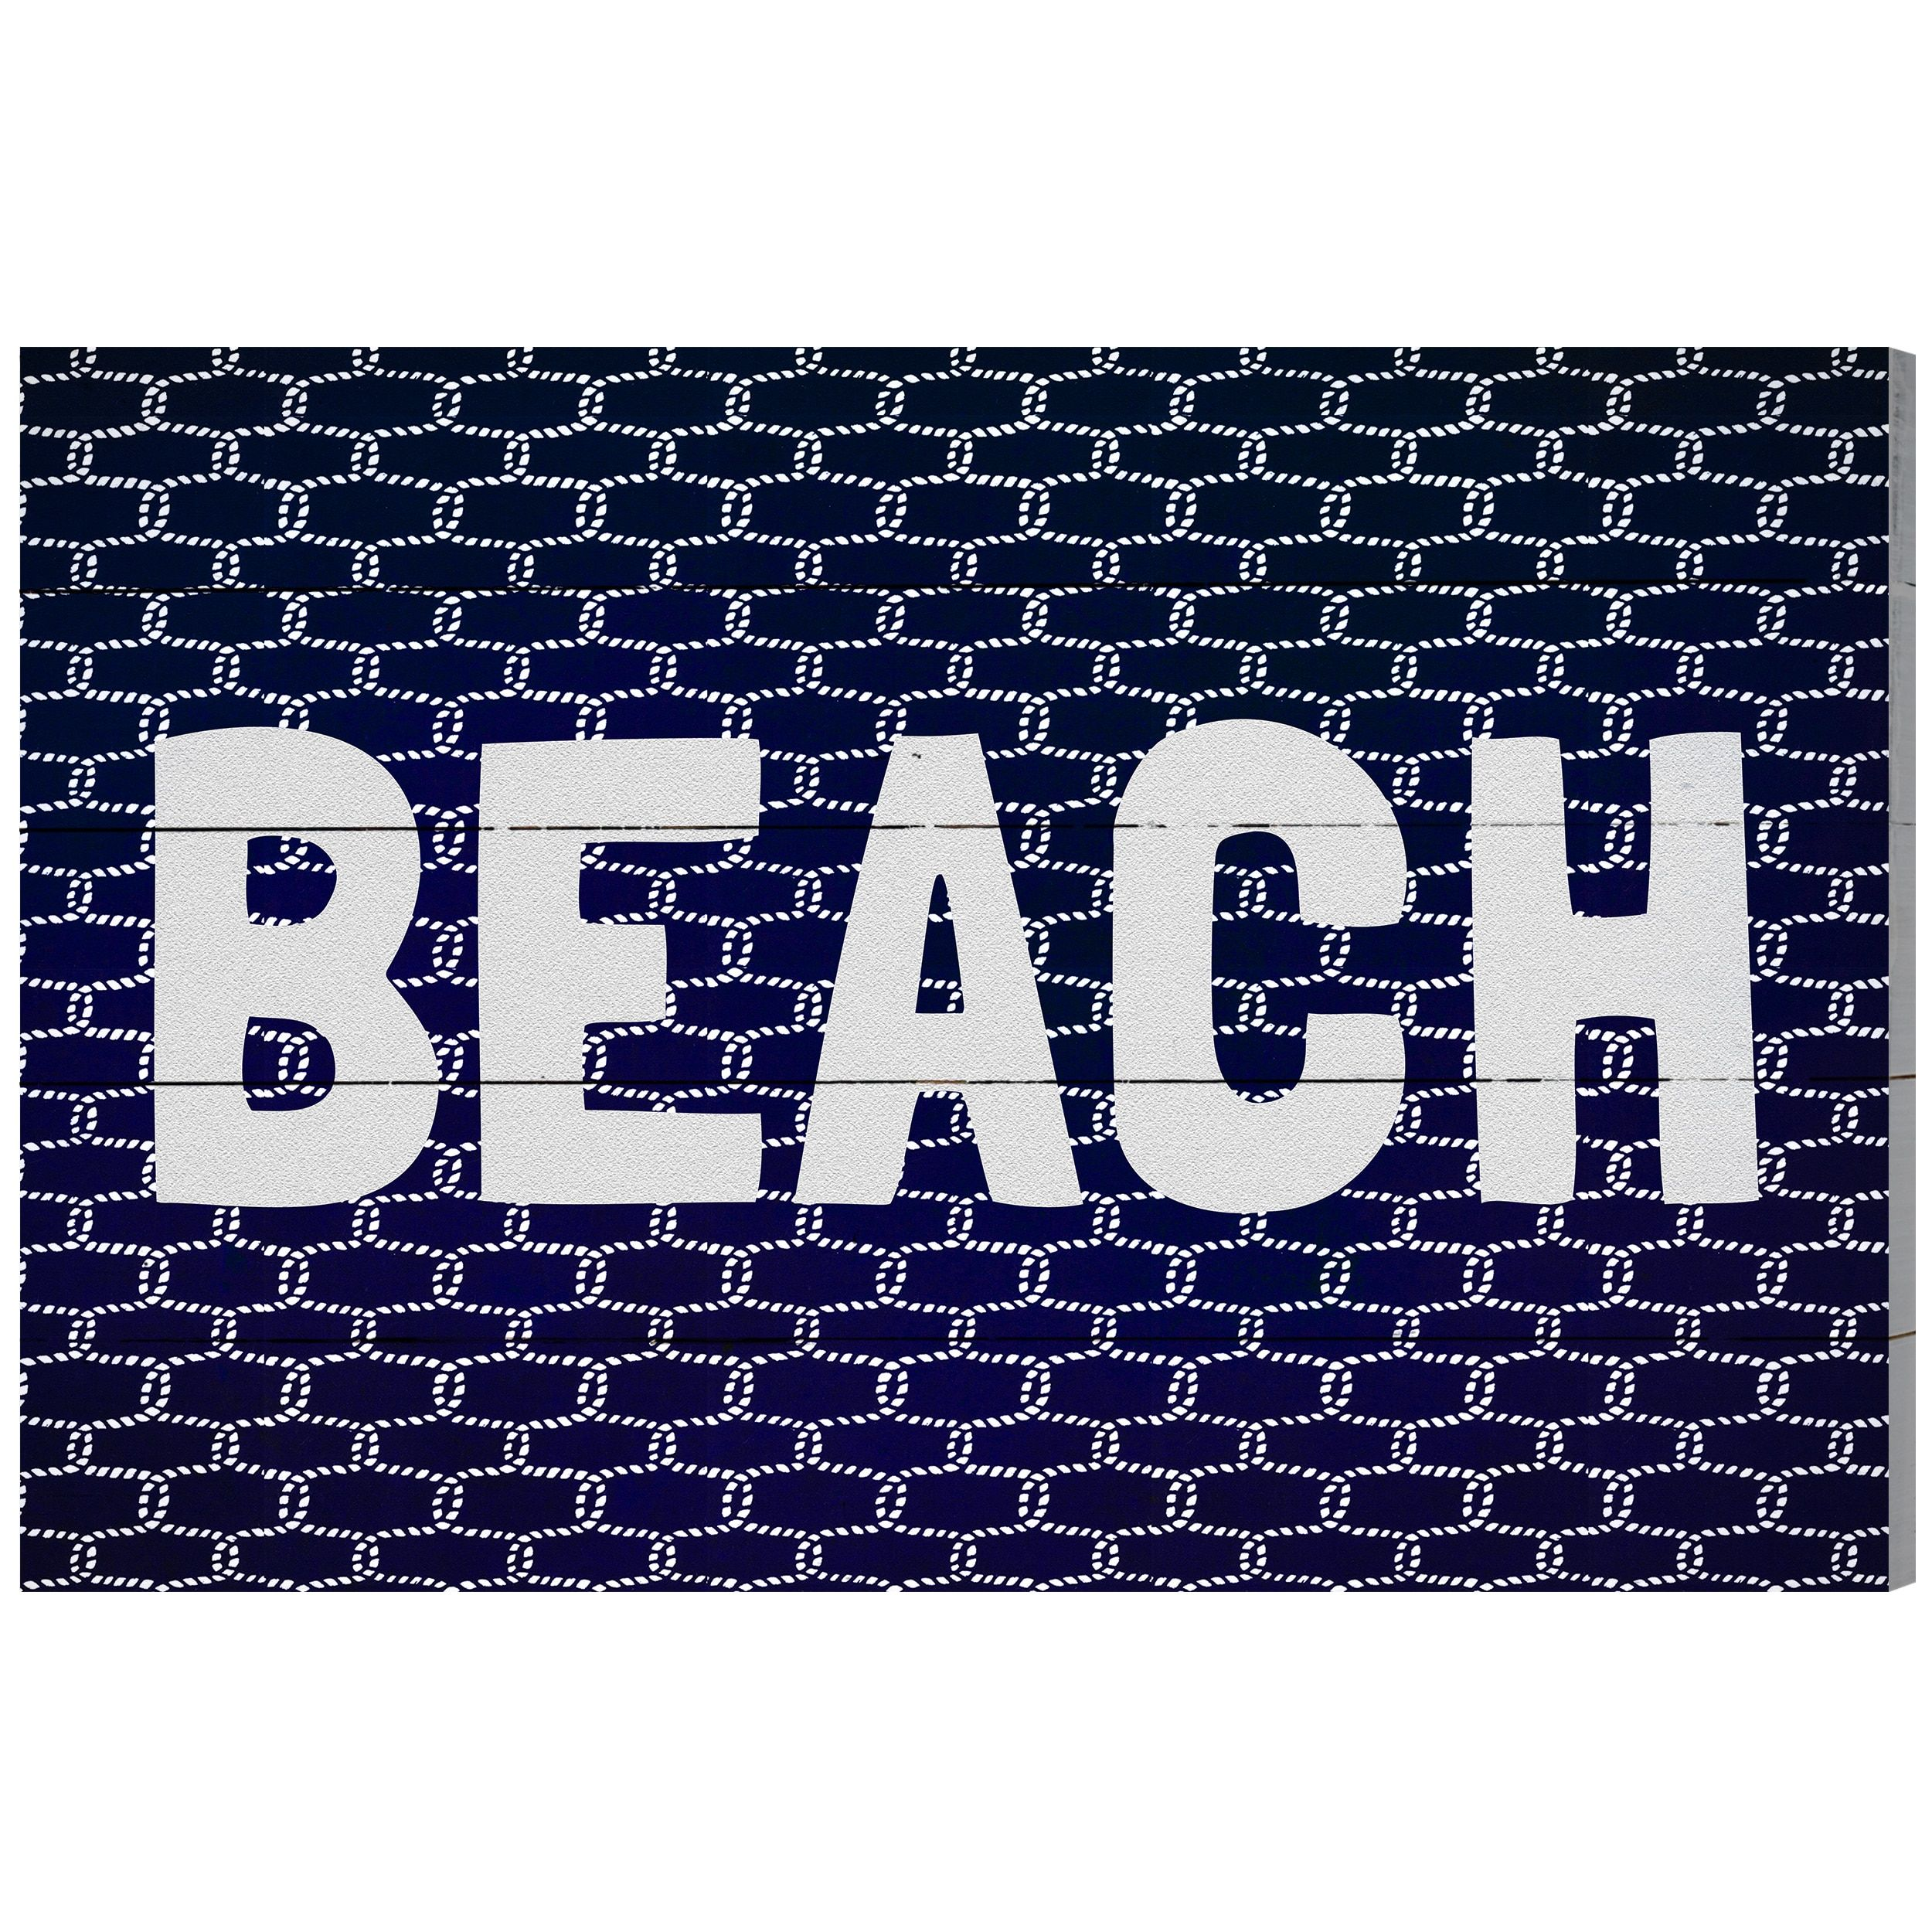 Wynwood studio ubeach knotu wood plaque art products pinterest